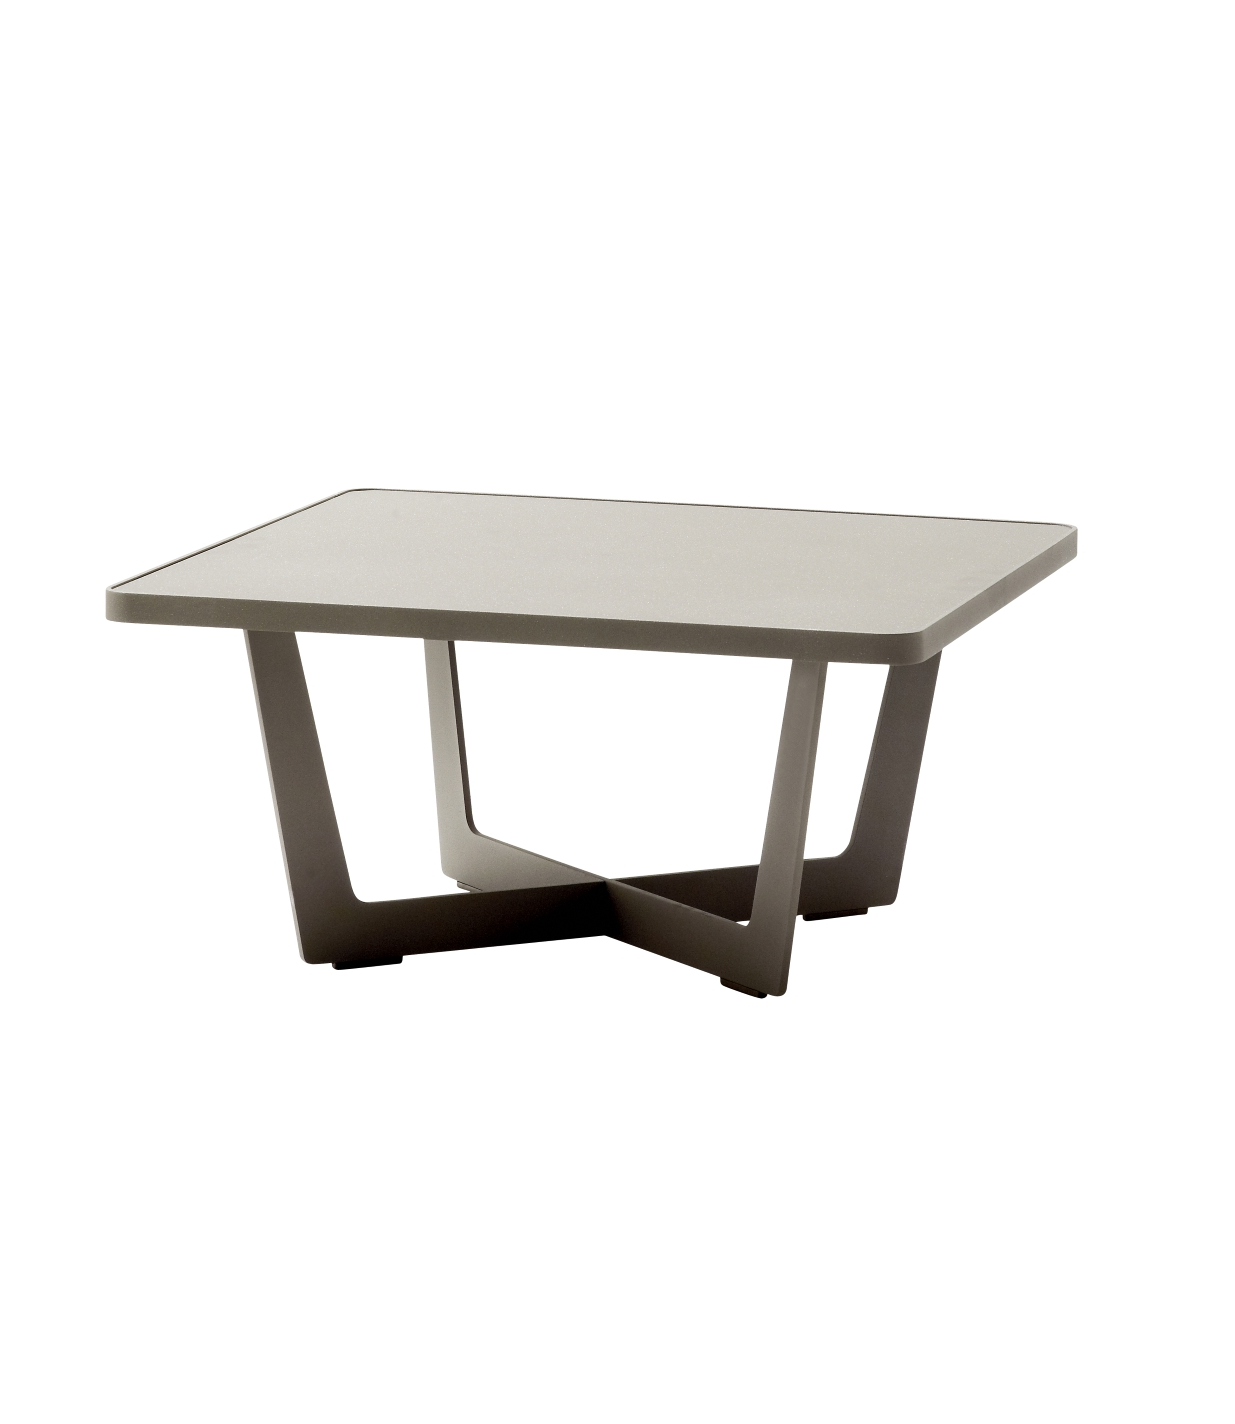 Time-out soffbord 81 x 81 cm taupe, Cane-line